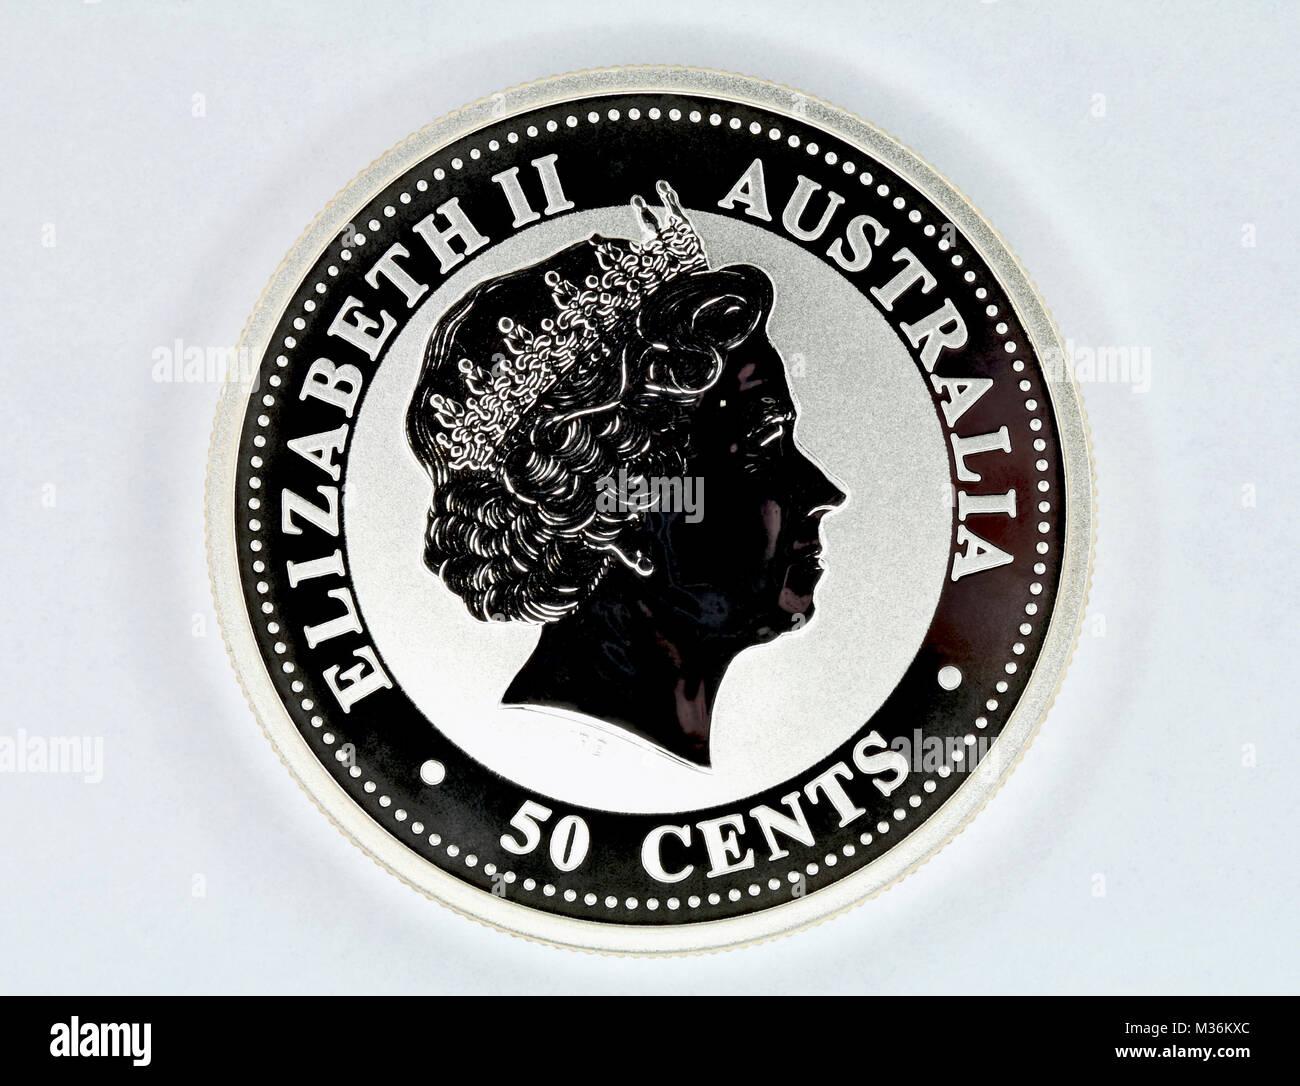 Cents sign stock photos cents sign stock images alamy silver coin of australia face value of 50 cents stock image buycottarizona Gallery